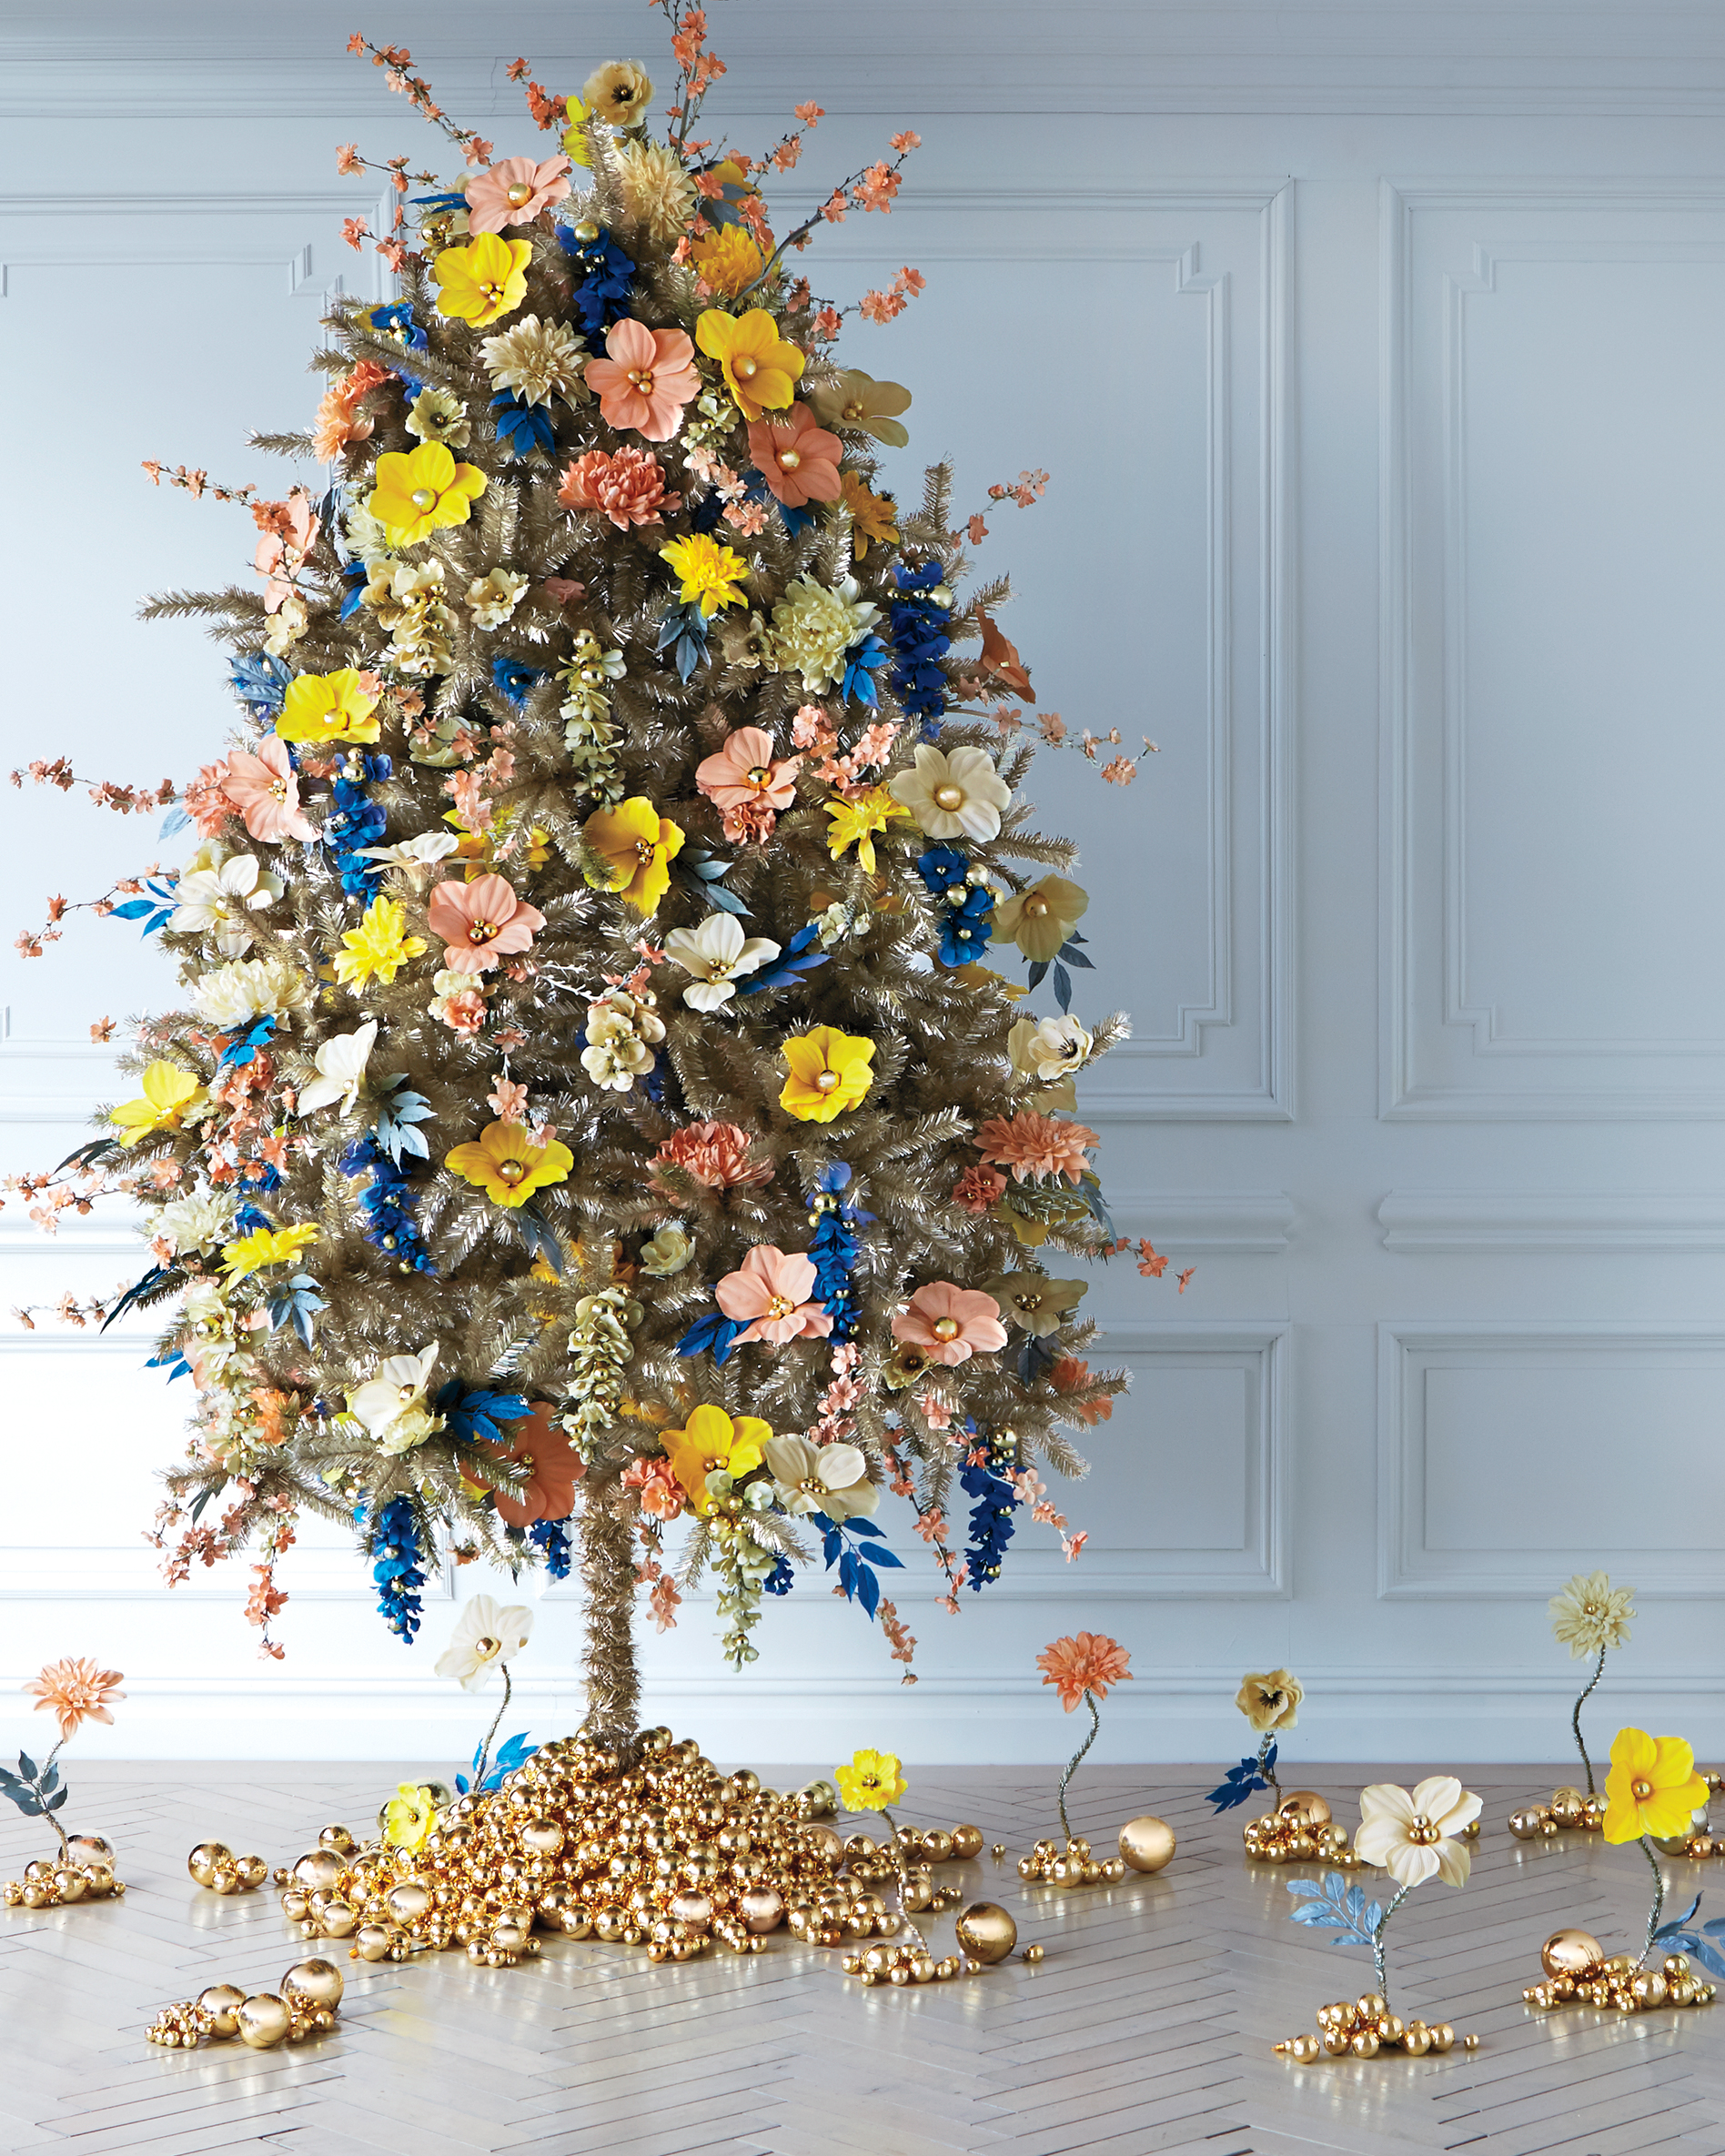 25 Of Our Most Creative Christmas Tree Decorating Ideas